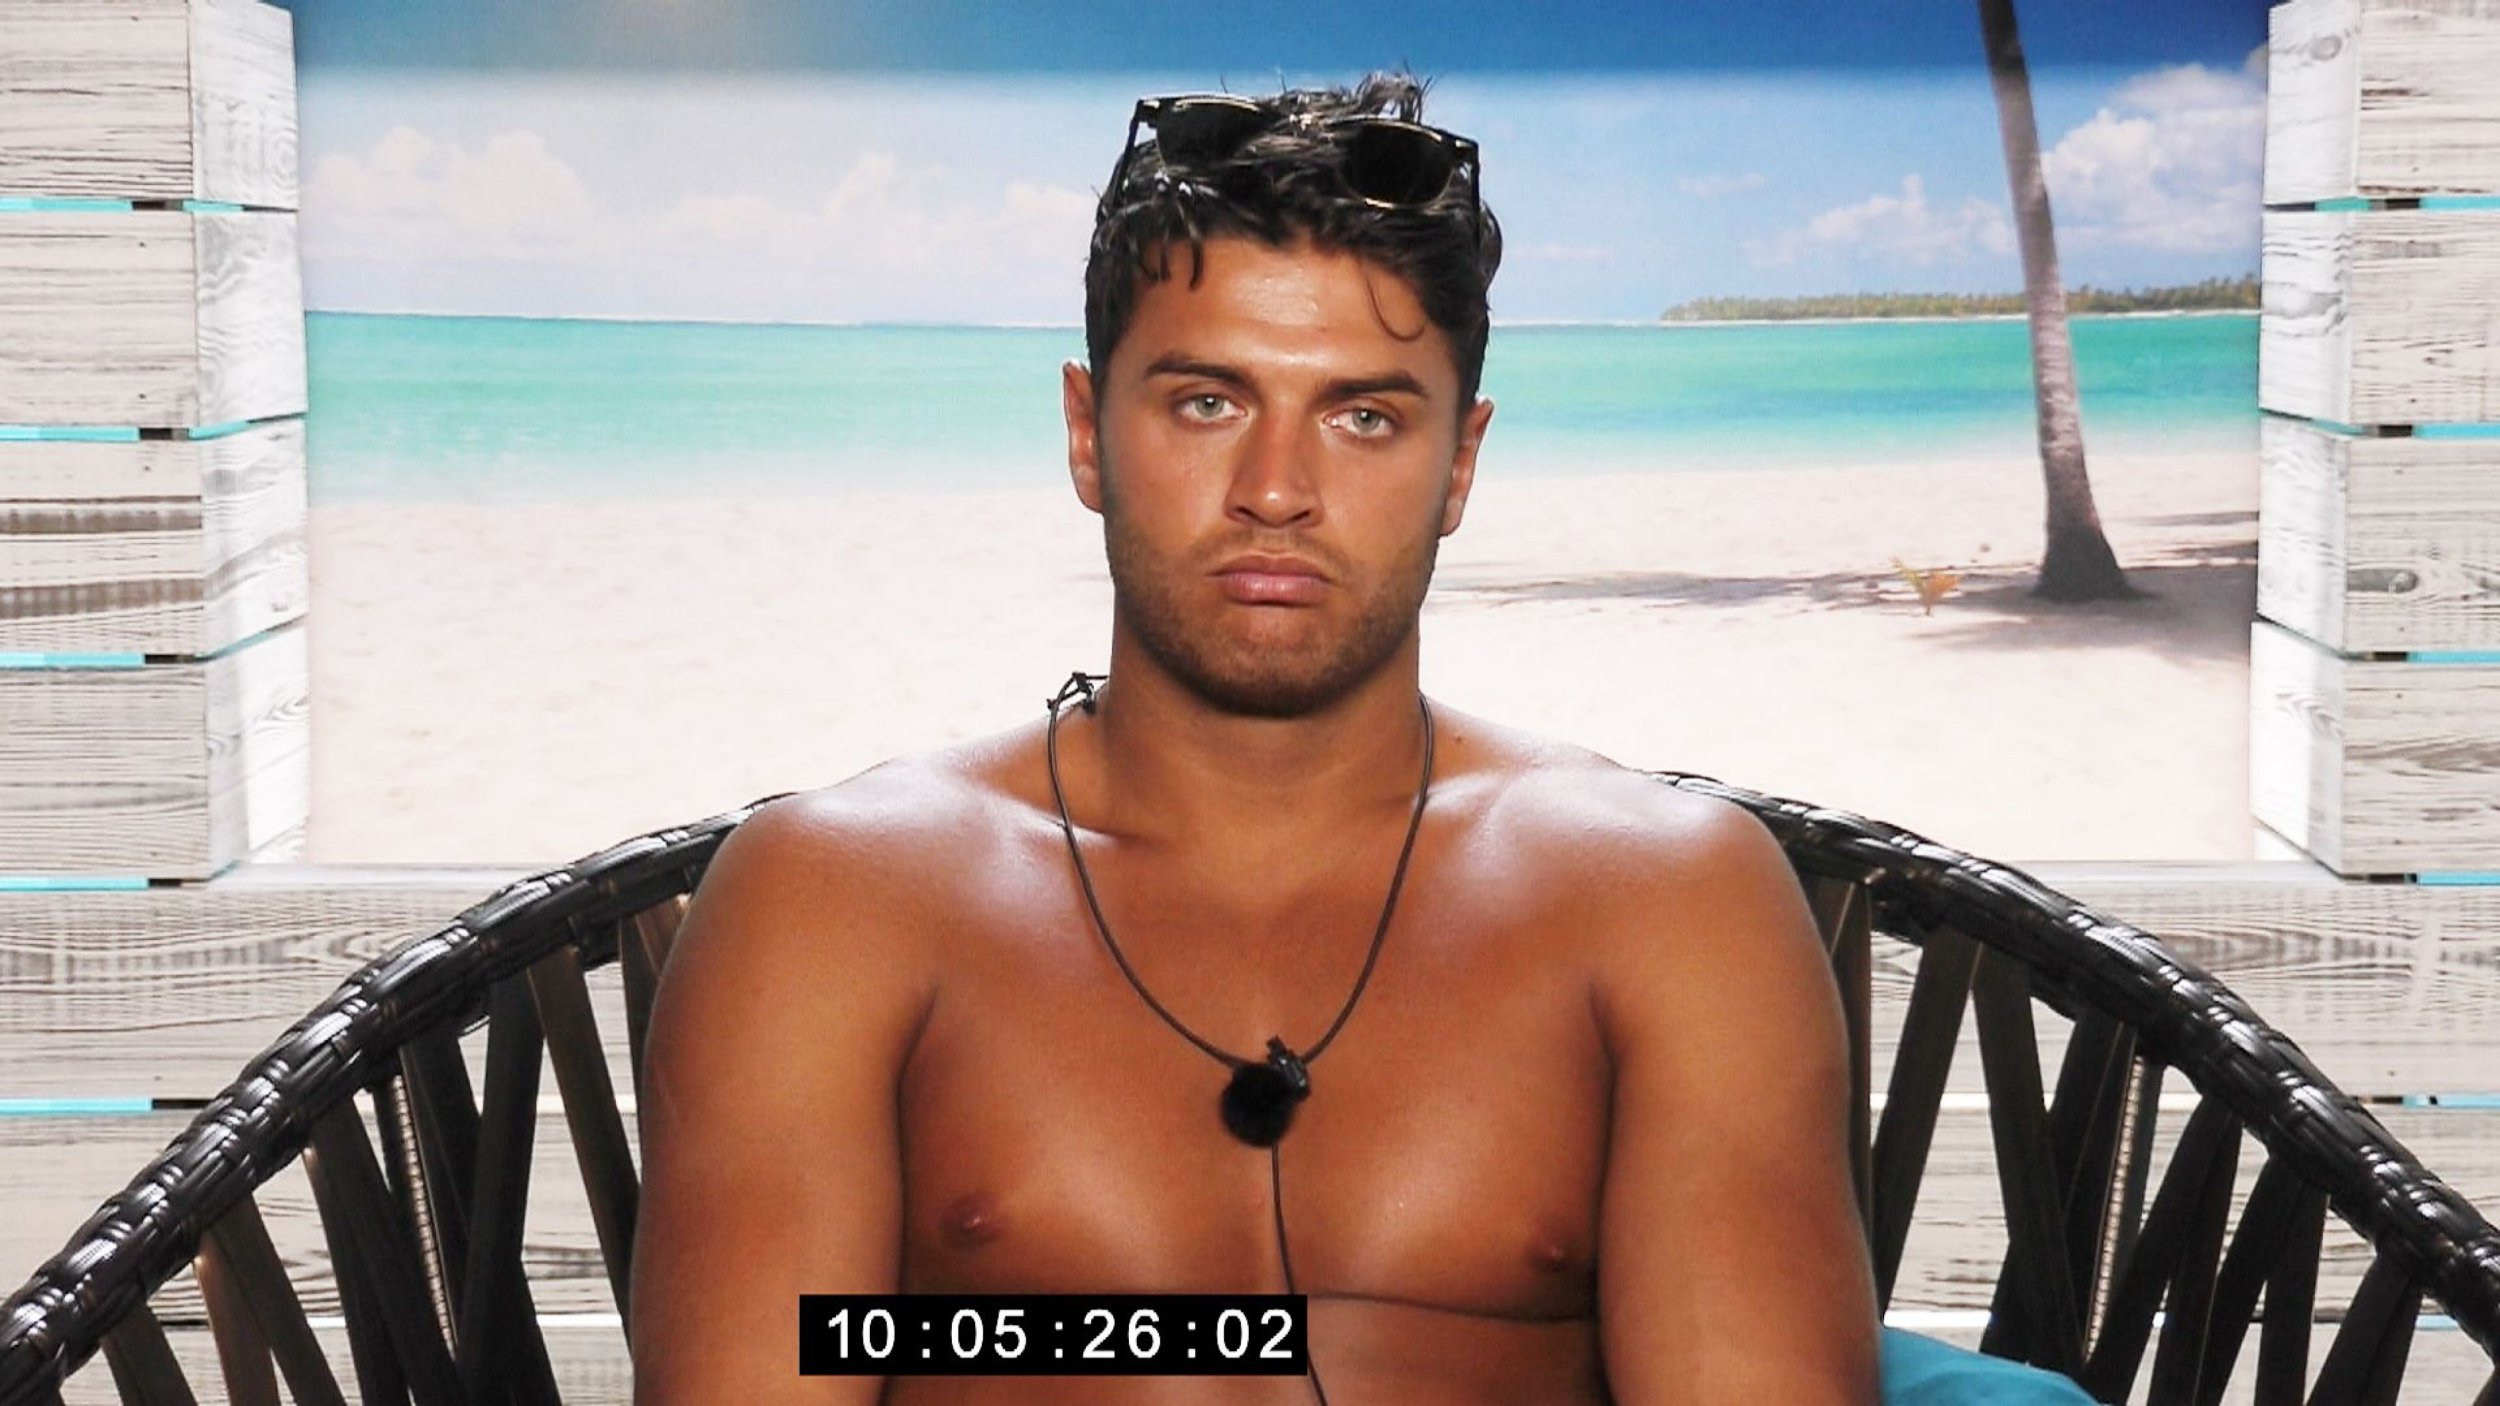 Mike Thalassitis launches competition to help pay fan's rent in last Instagram before death